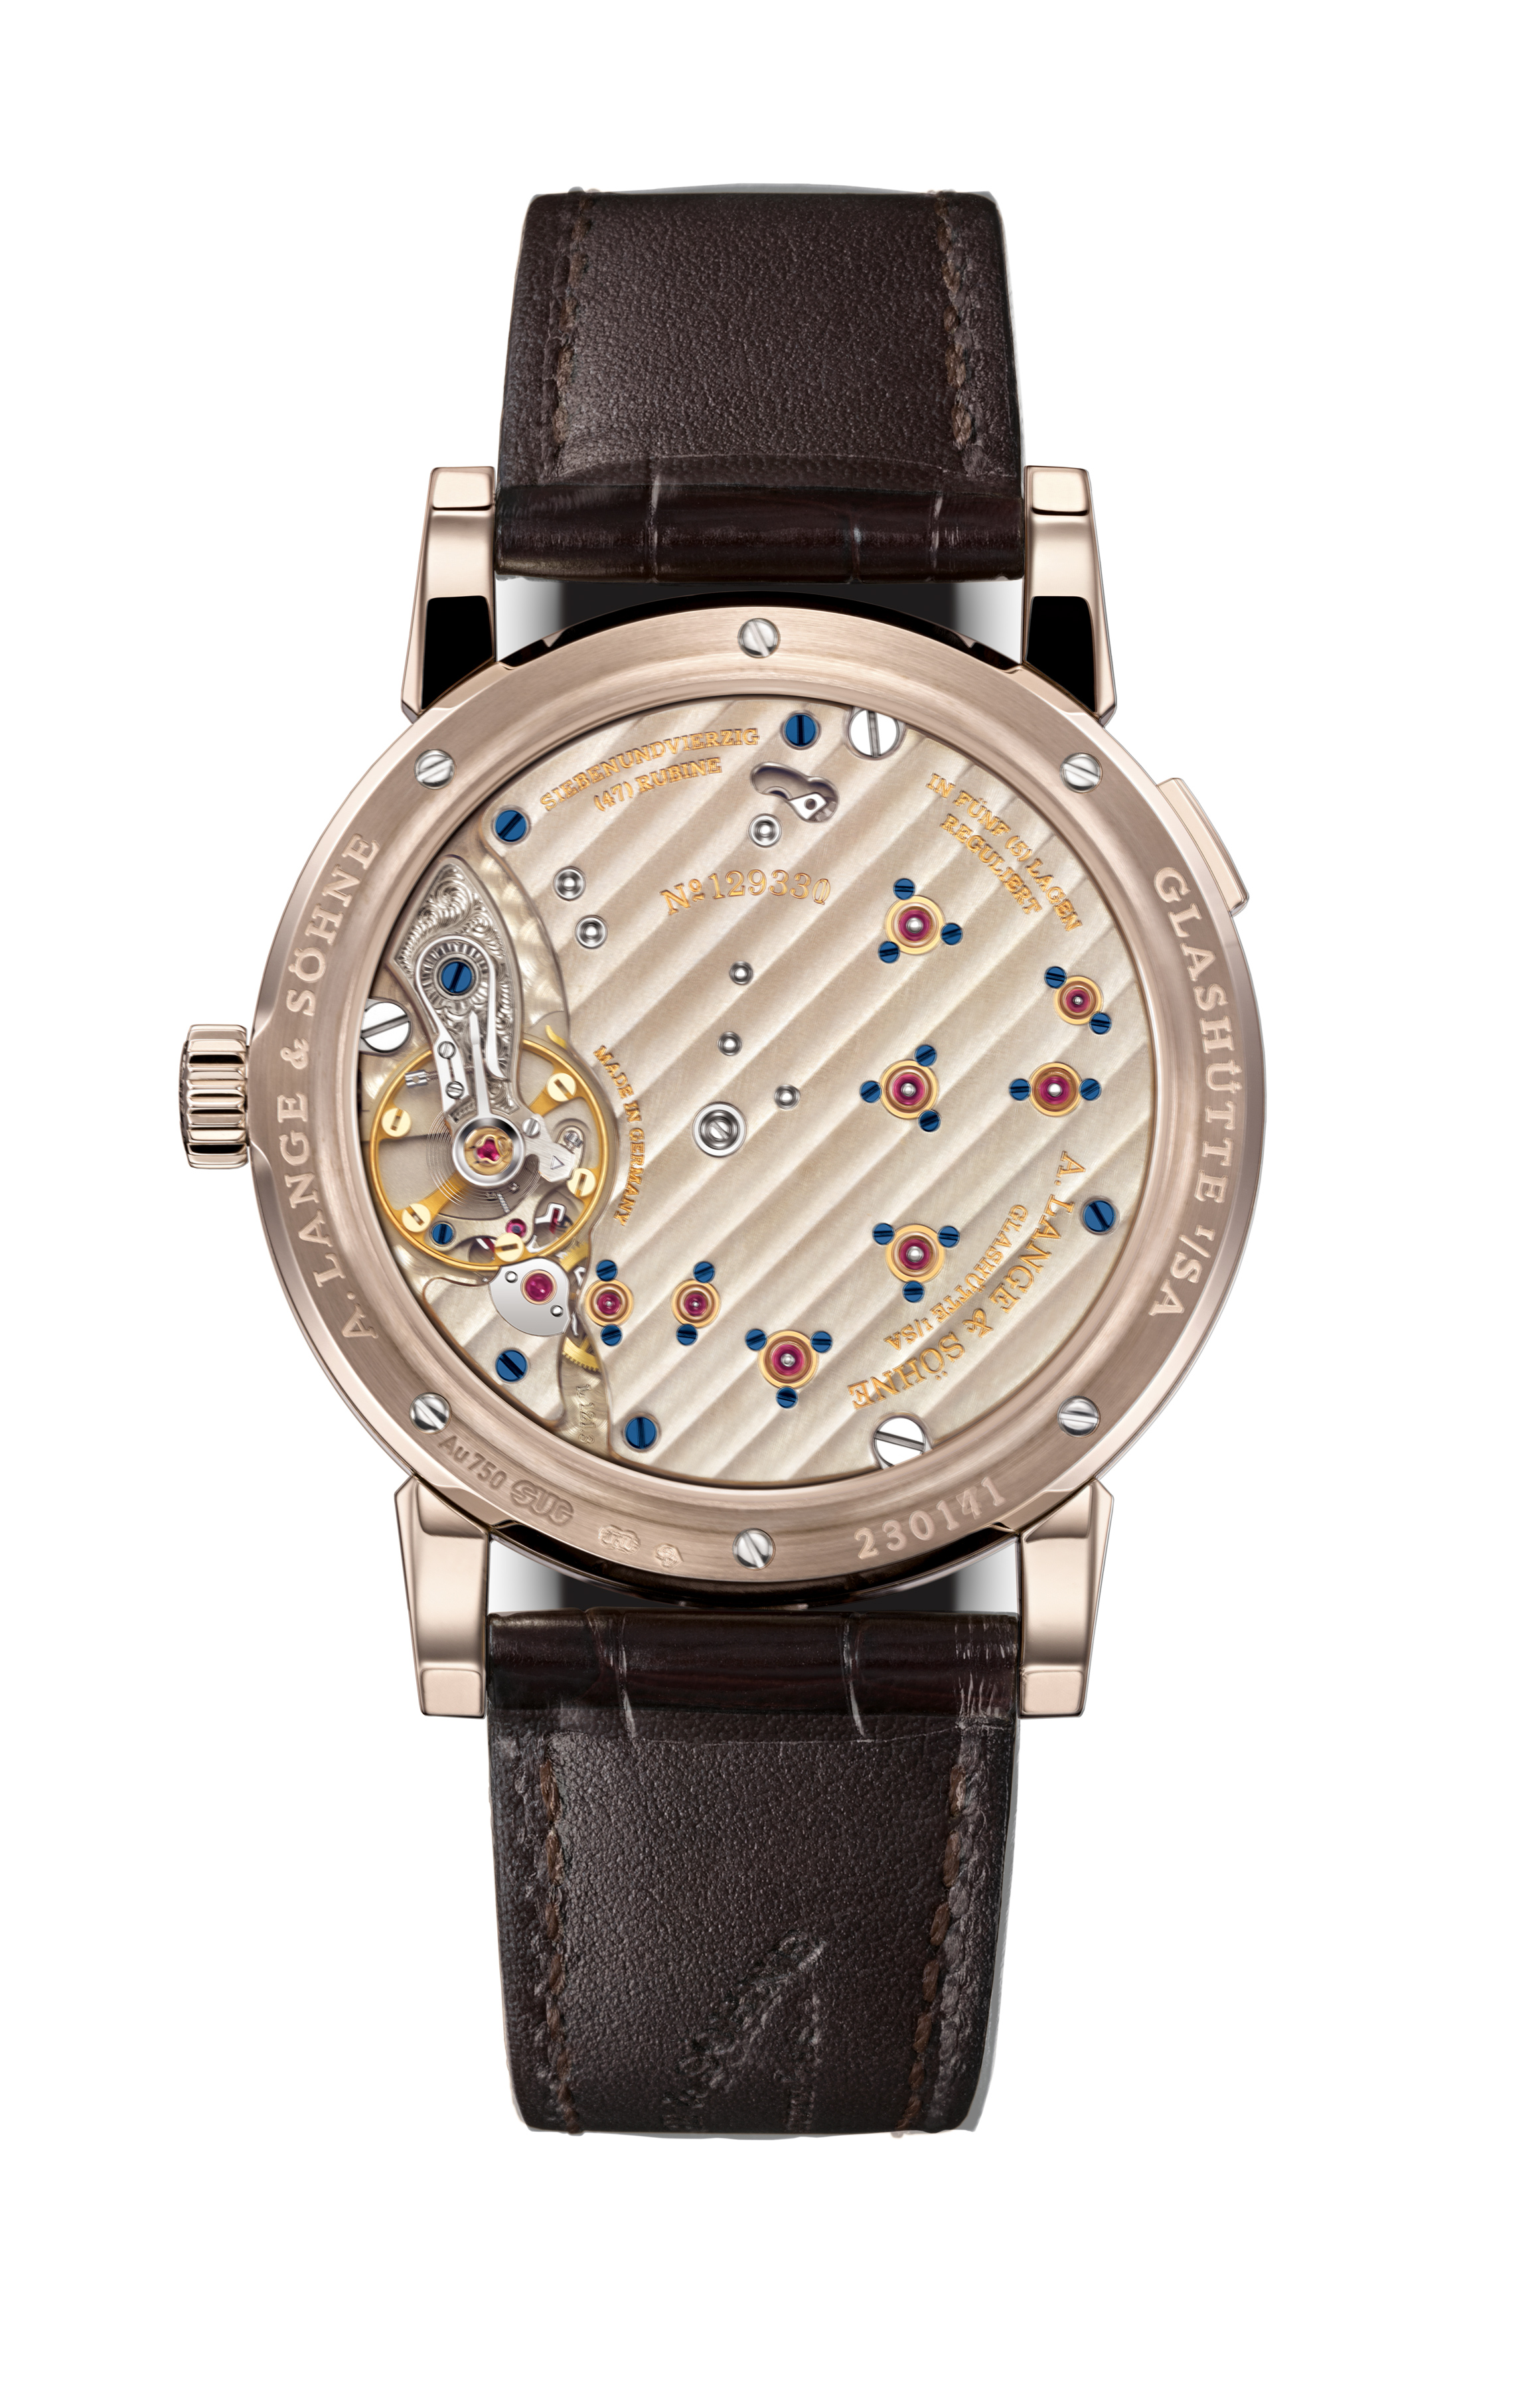 A.L&S Lange 1 Moon Phase 192.032